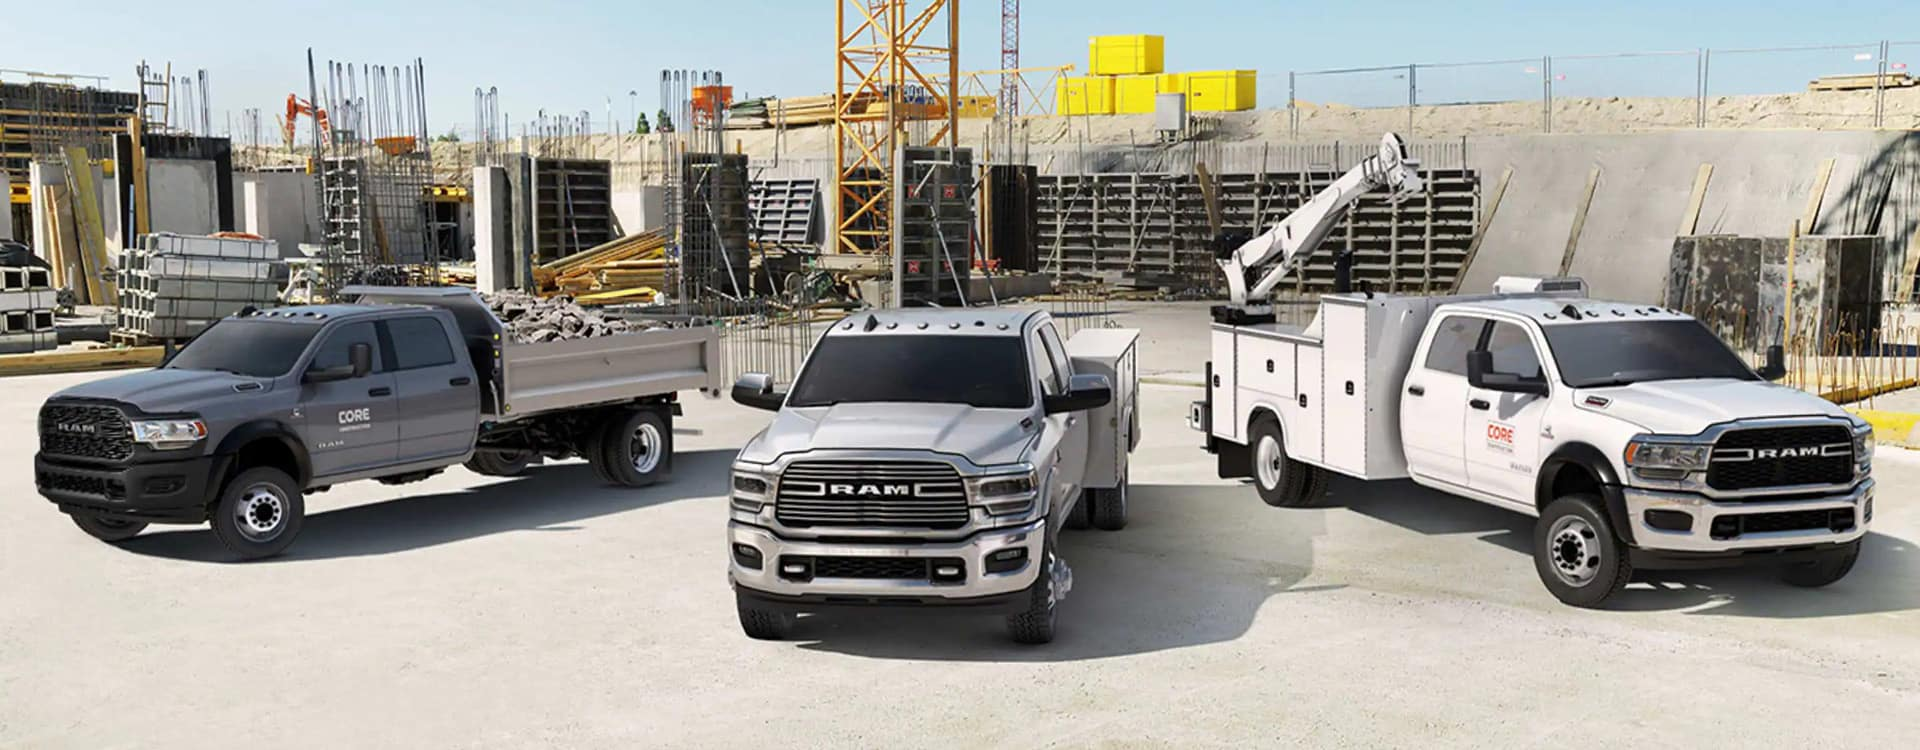 2021 Ram Chassis Cab in St. Louis